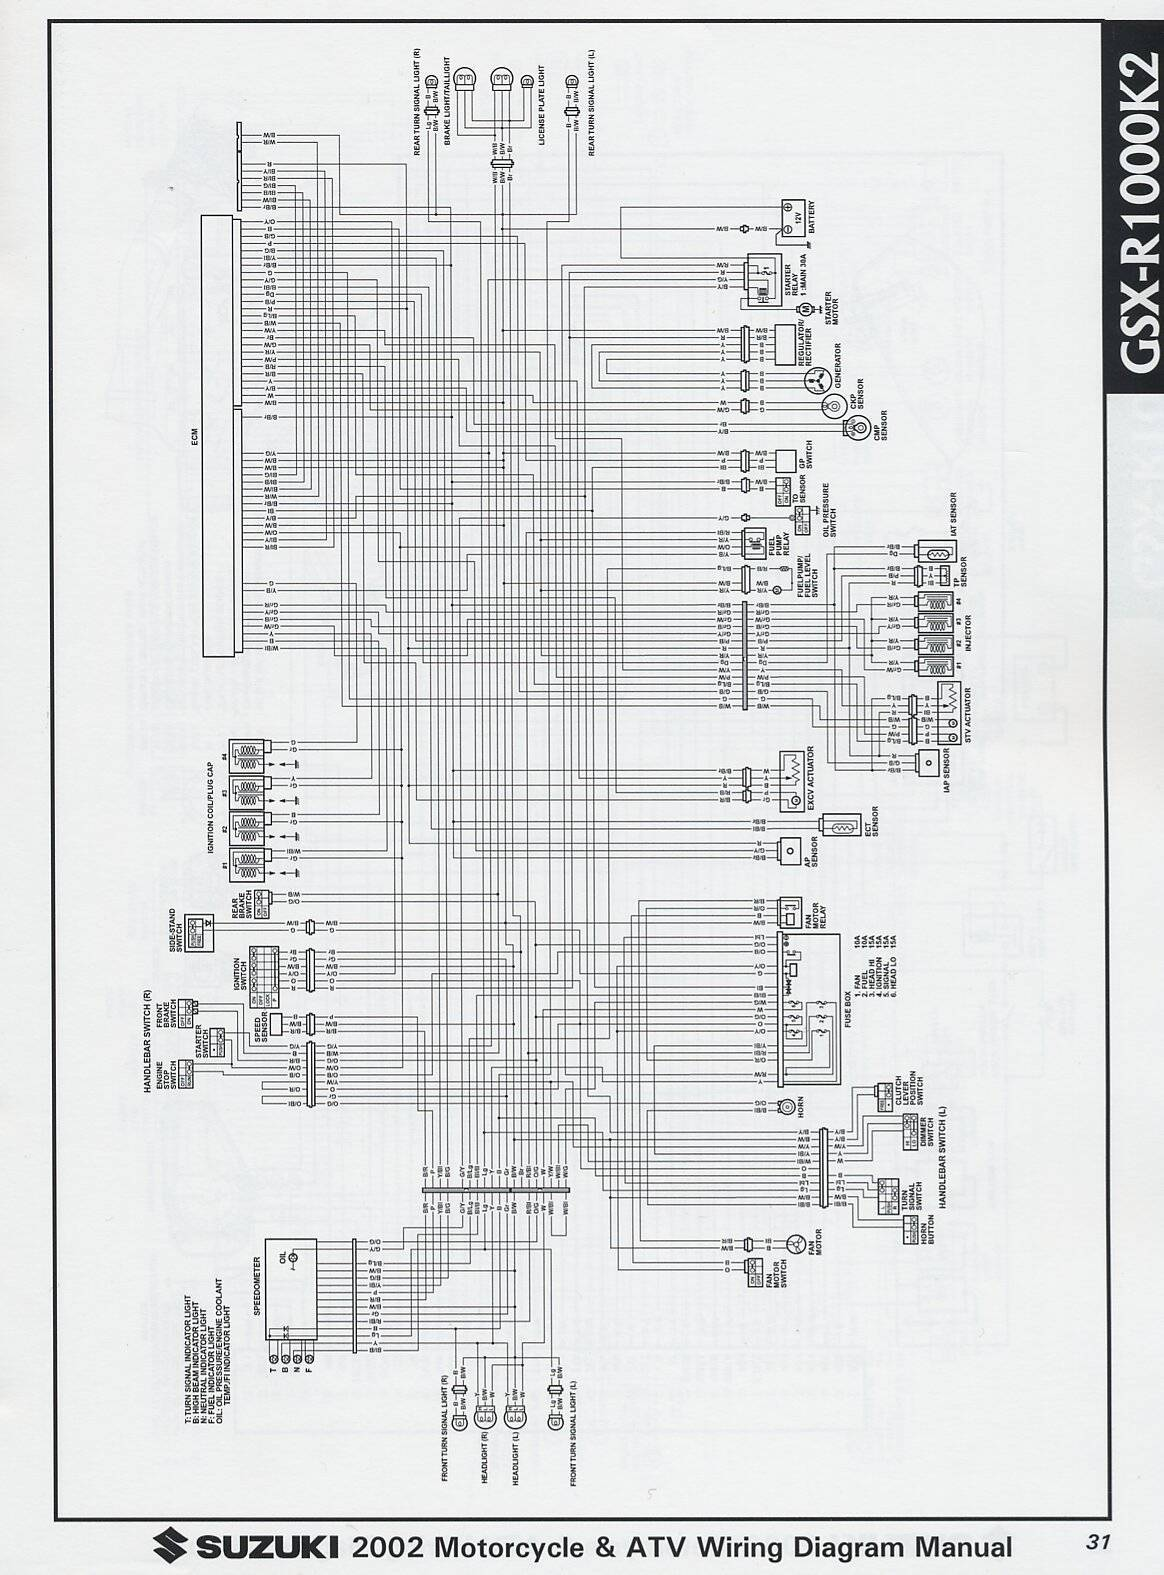 Led Devil Eye Headlight Gsxr Wiring Diagram  U2013 Database